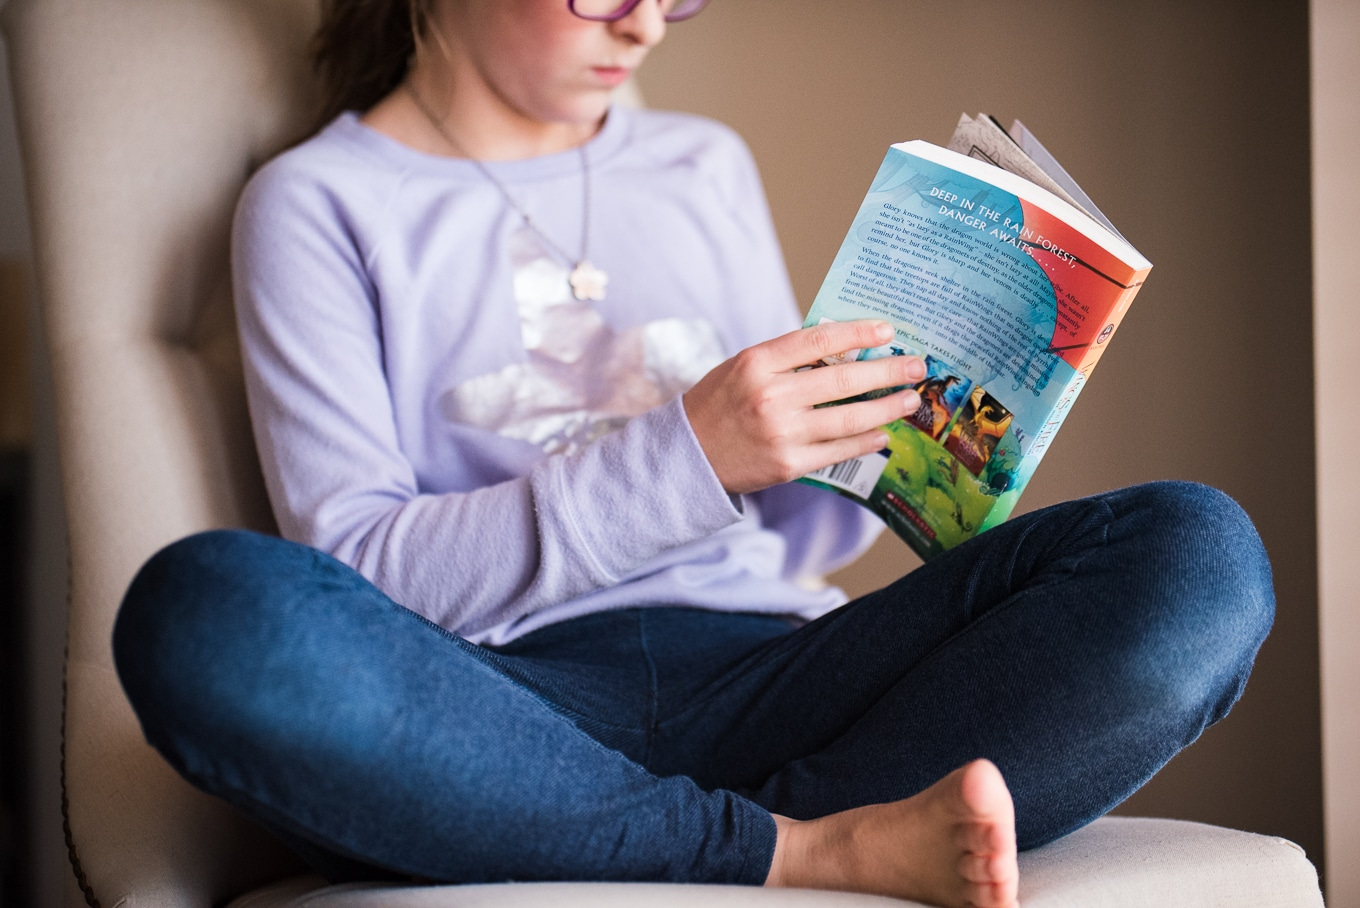 child reading wings of fire during lifestyle photography session